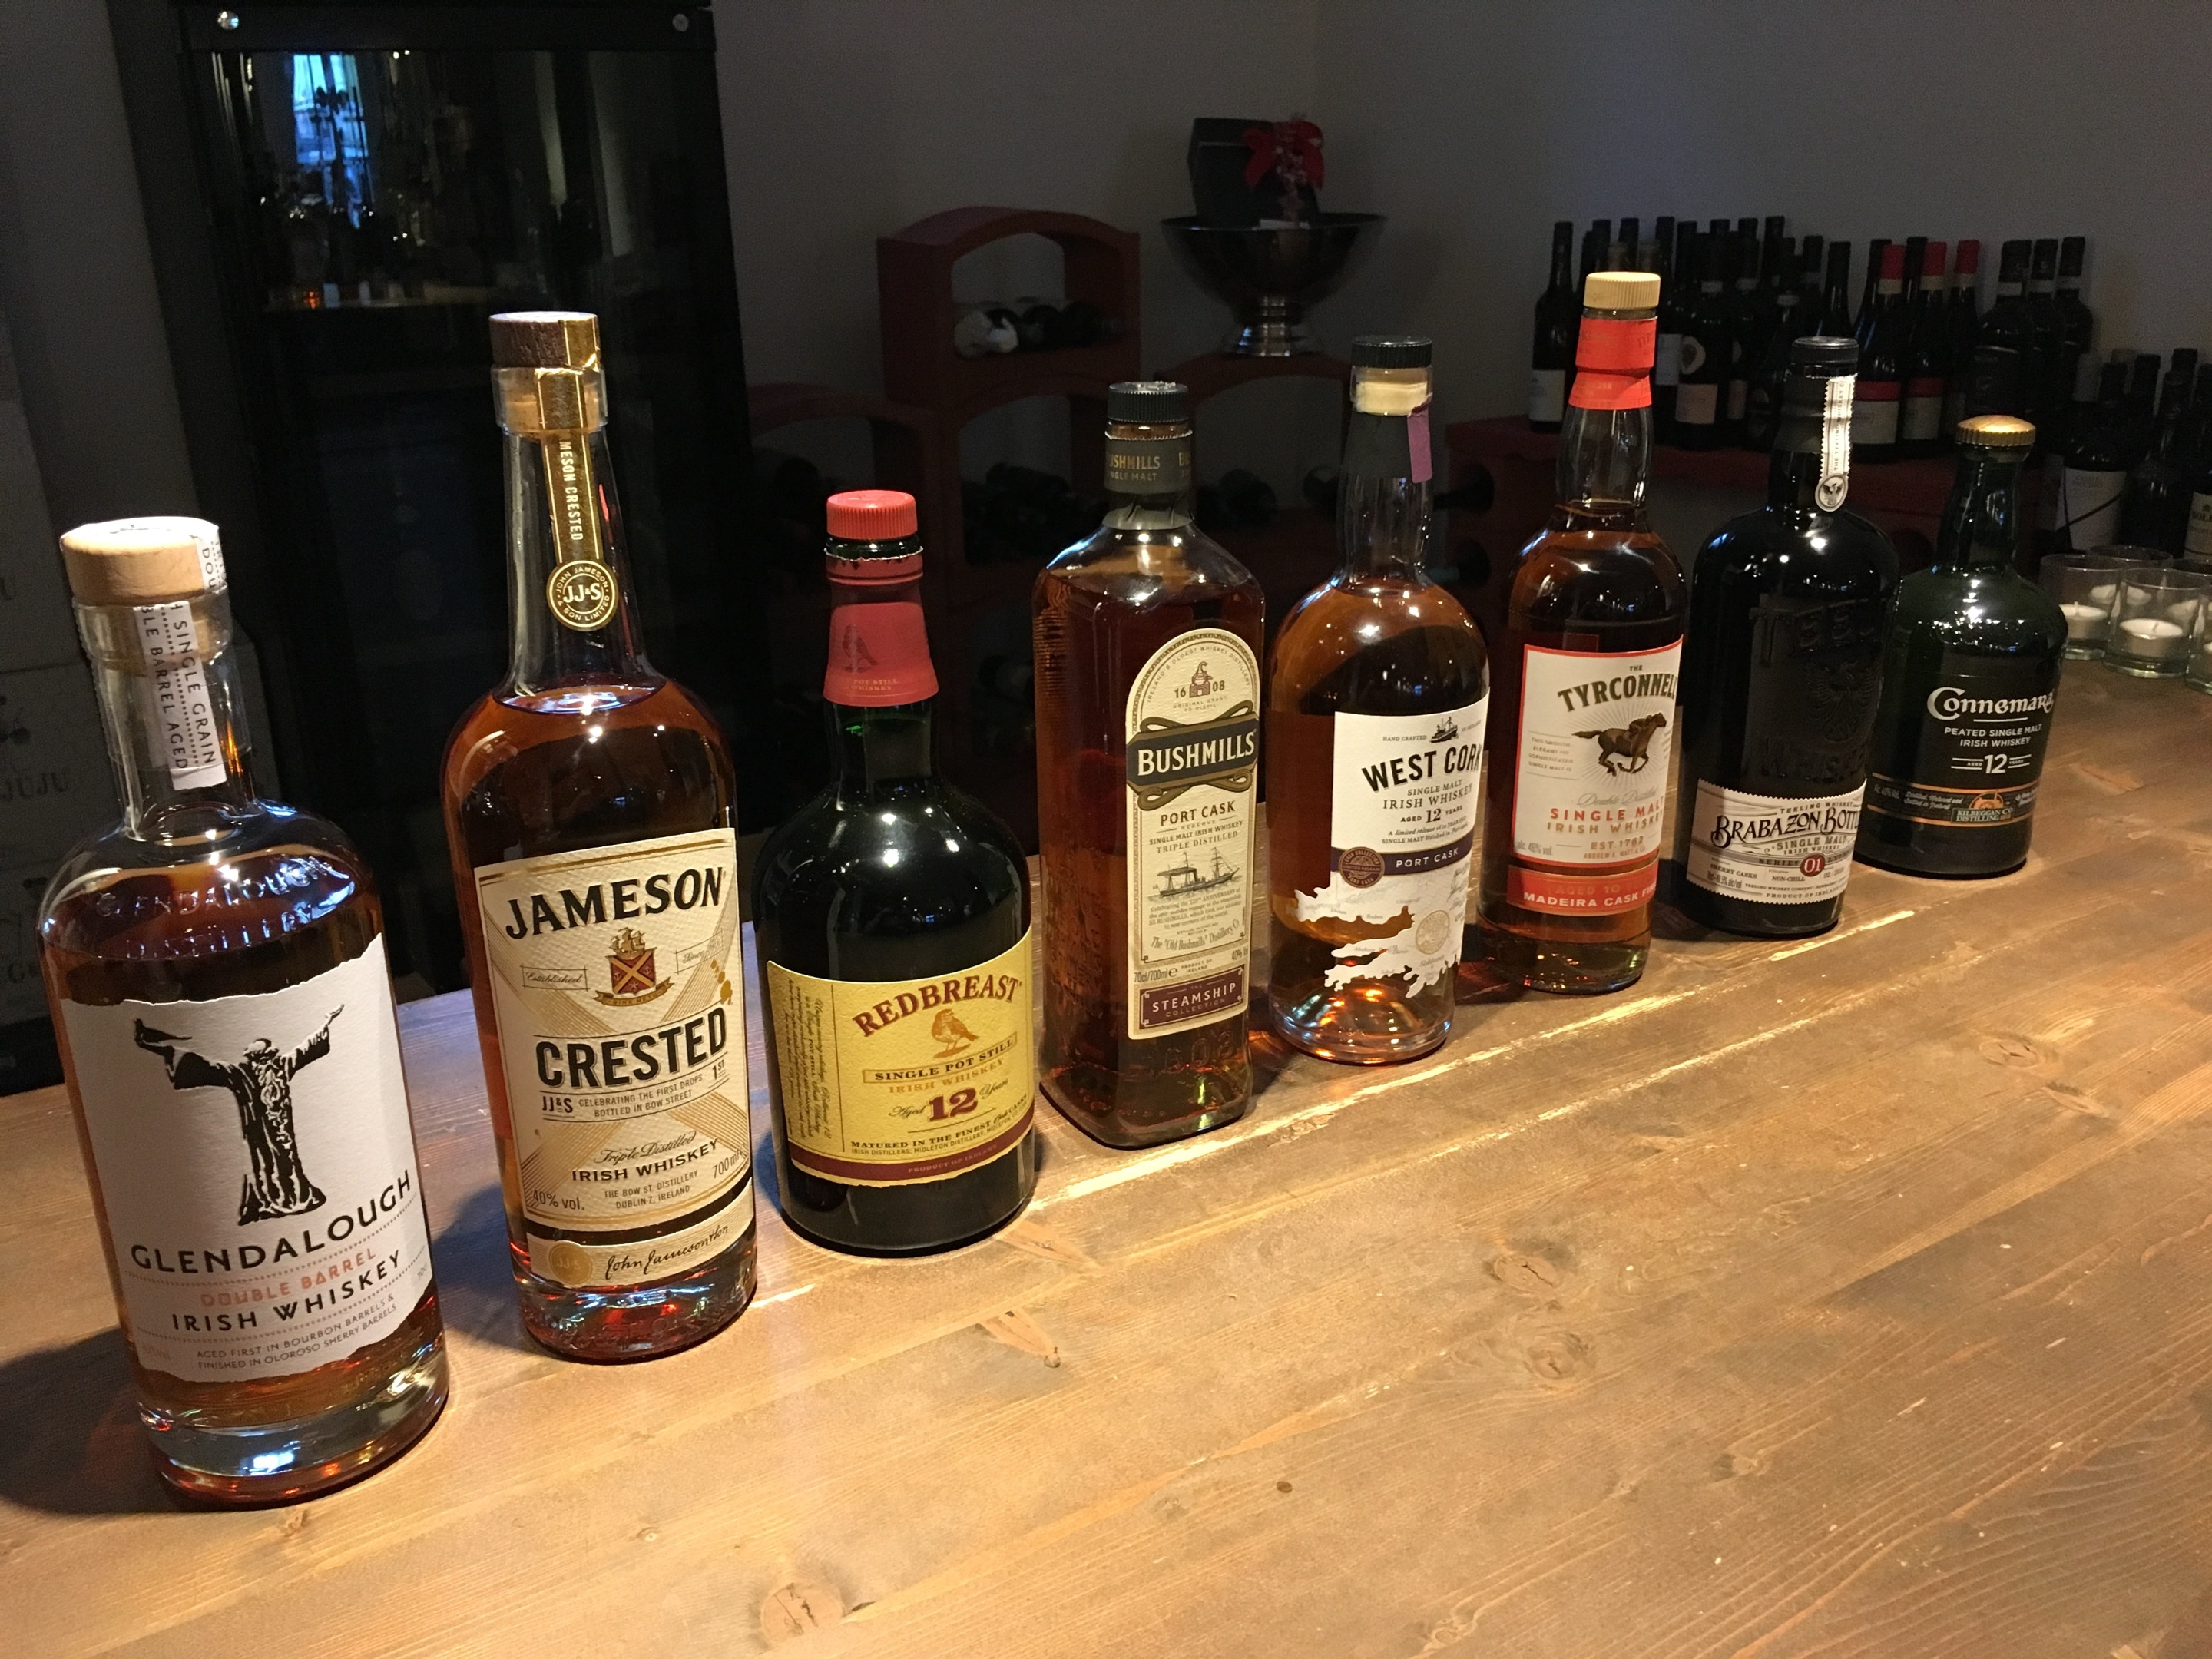 Malt Mariners Irish Single Malt Single Pot Still Whiskey Tasting Verkostung Weinland La Barrique Wedel